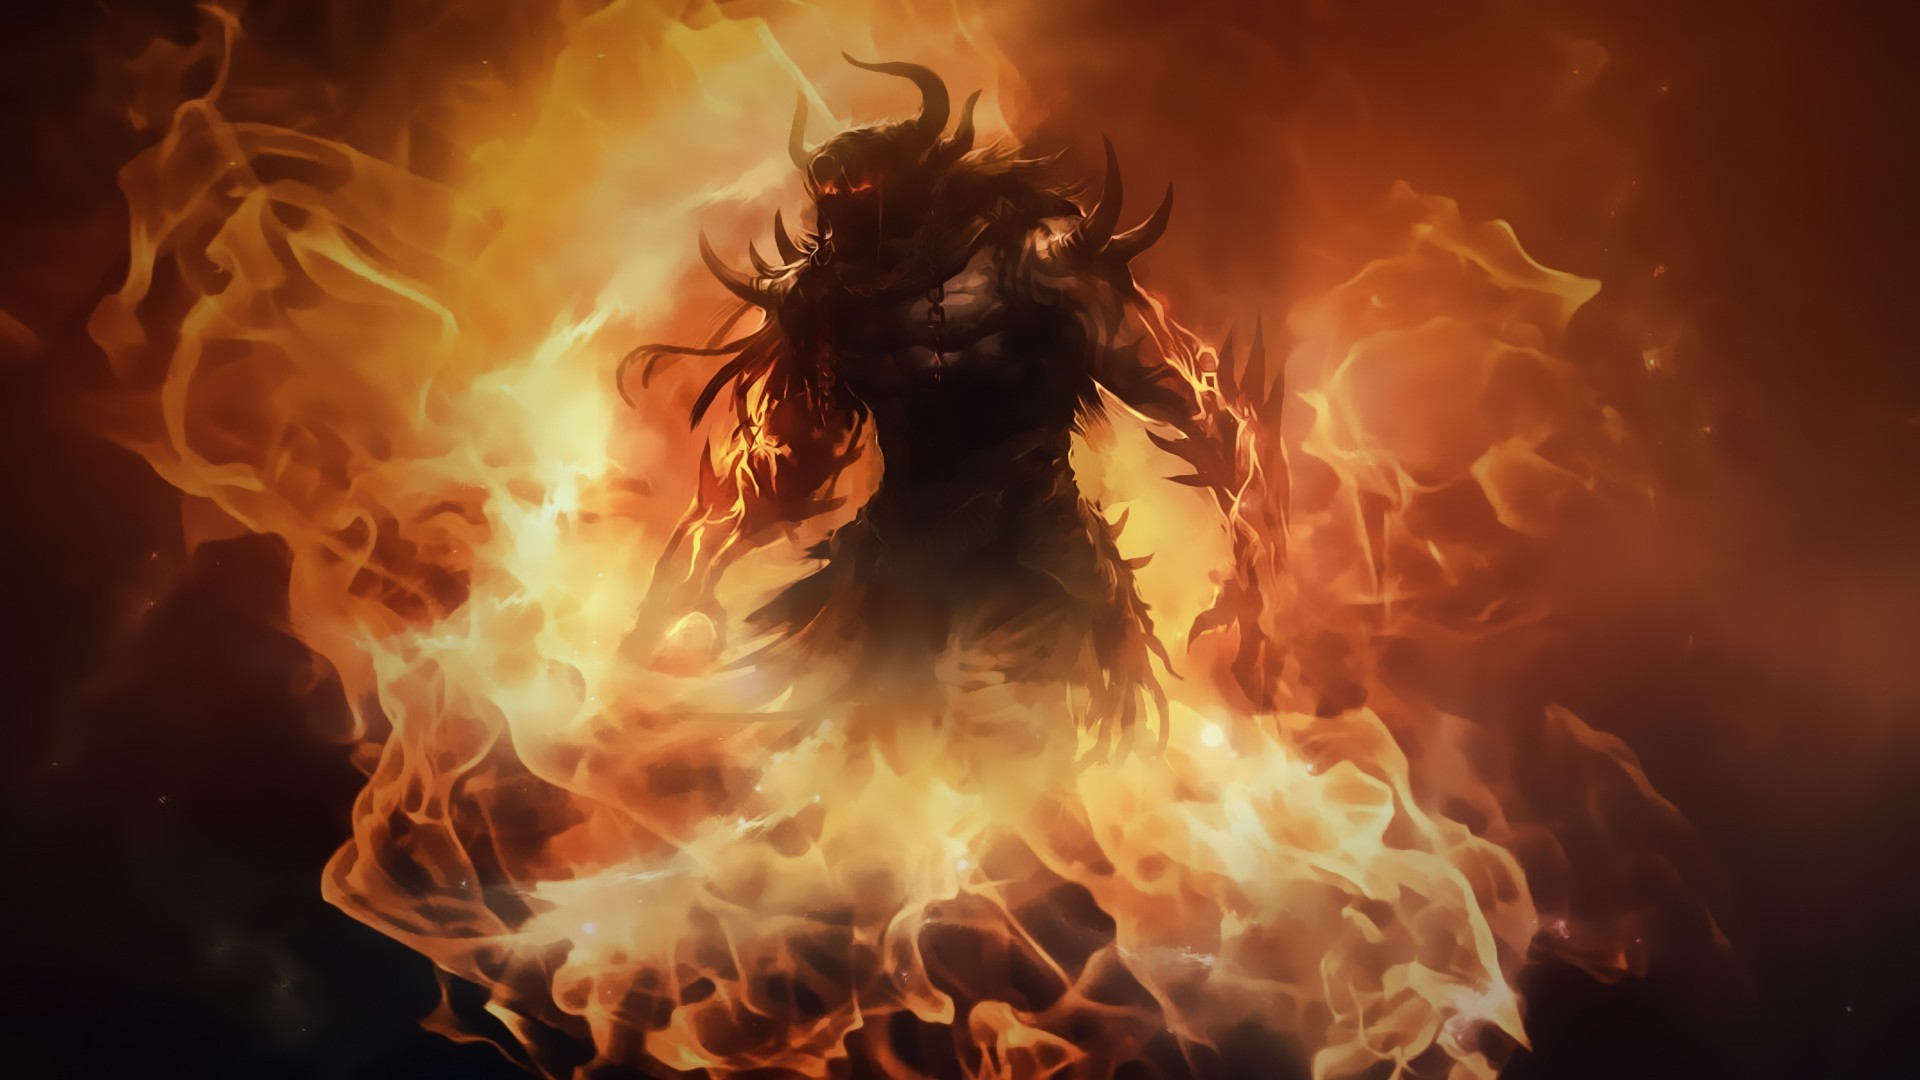 Guild Wars 2 Pc Gaming Video Games Fire Demon